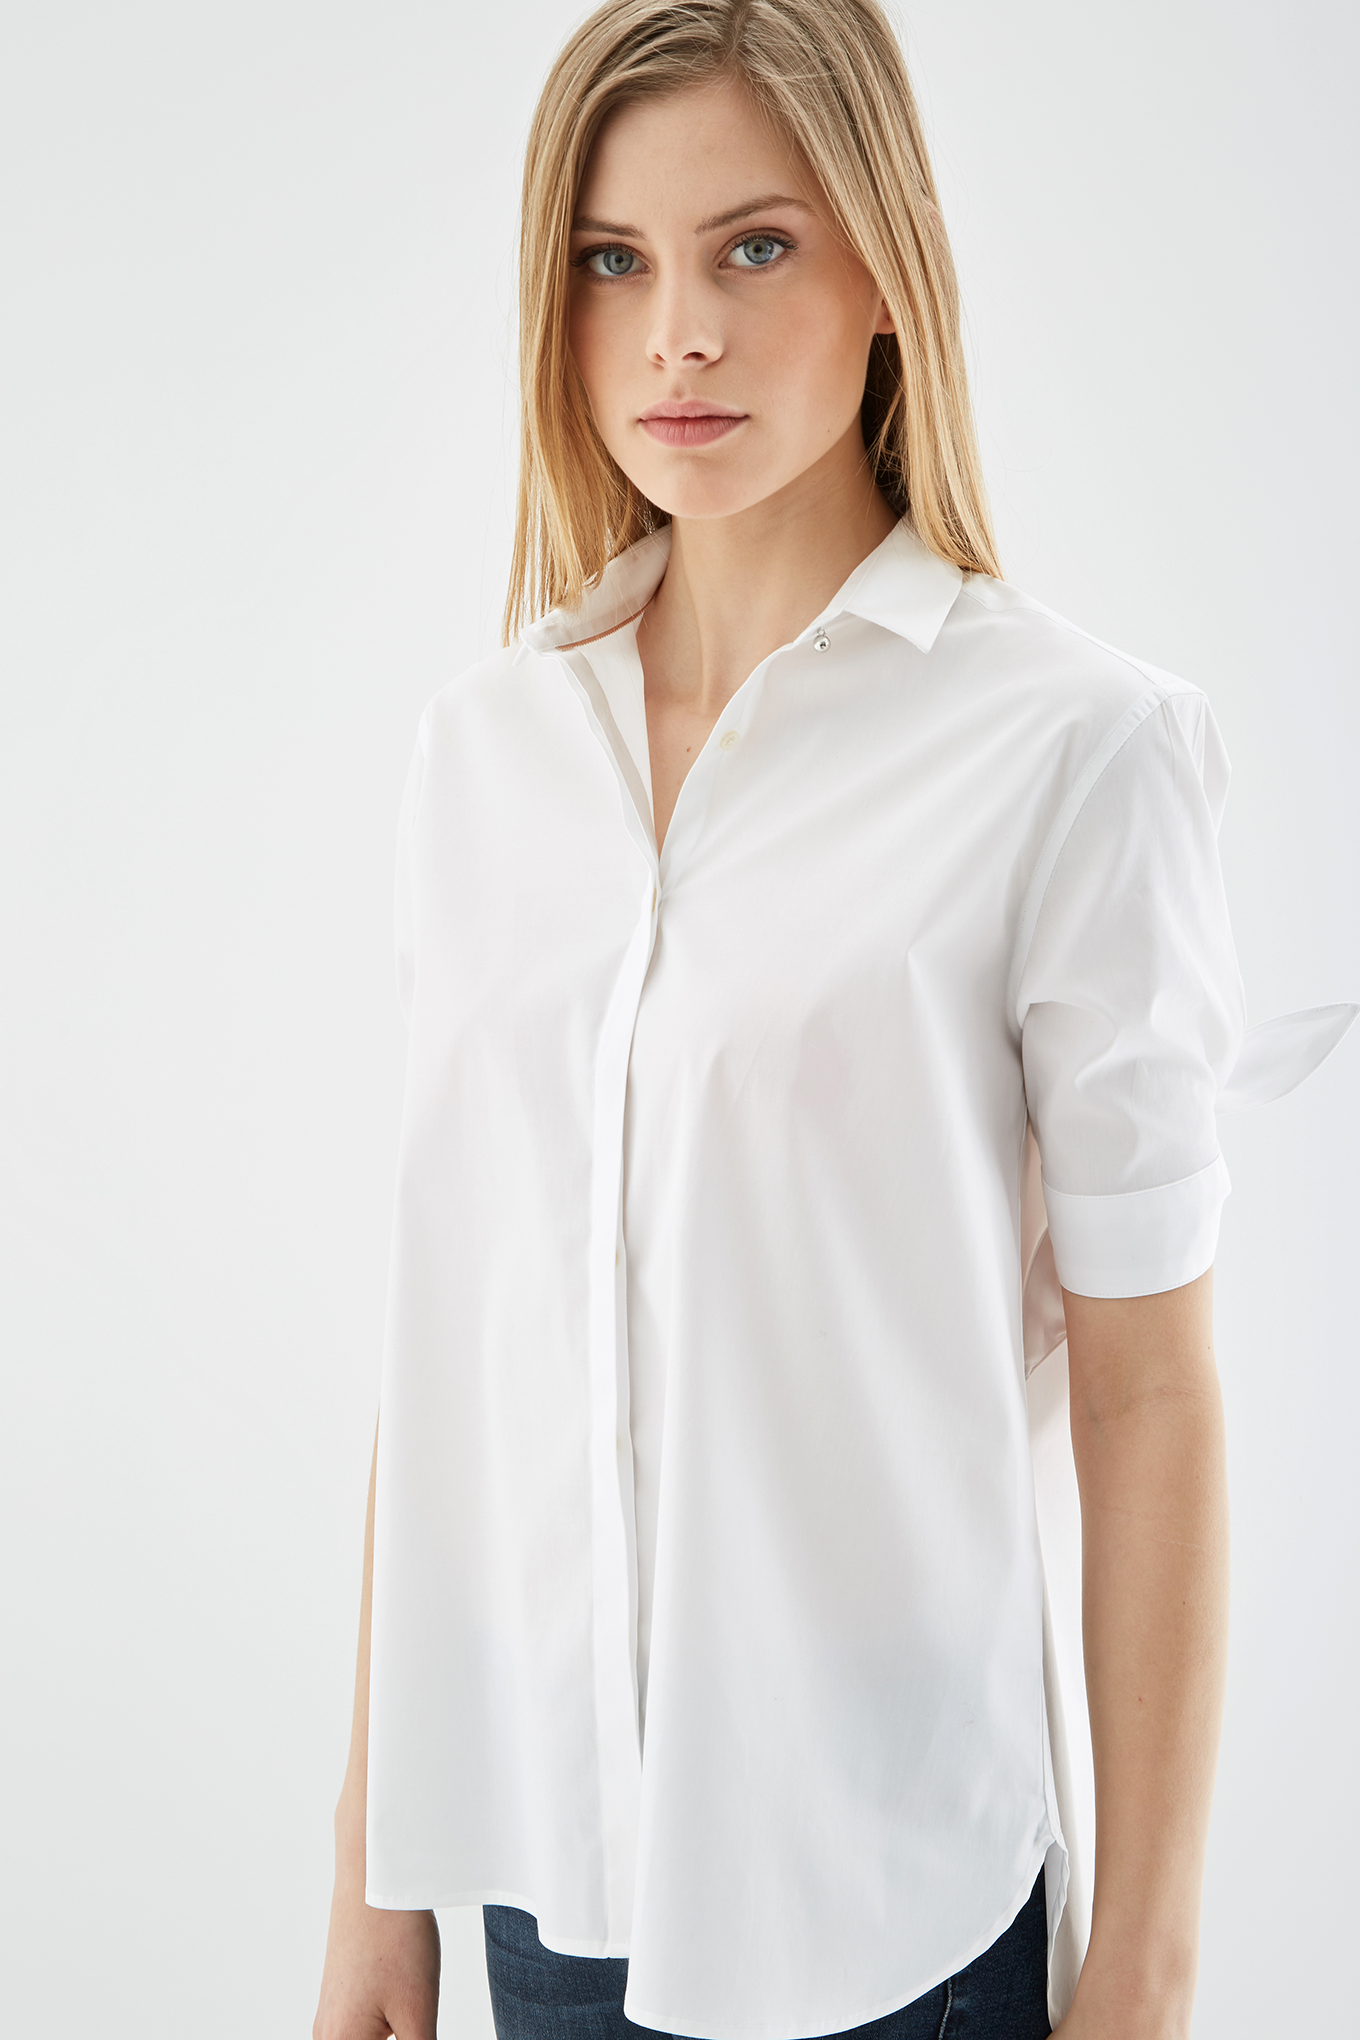 Blusa Branco Casual Mulher